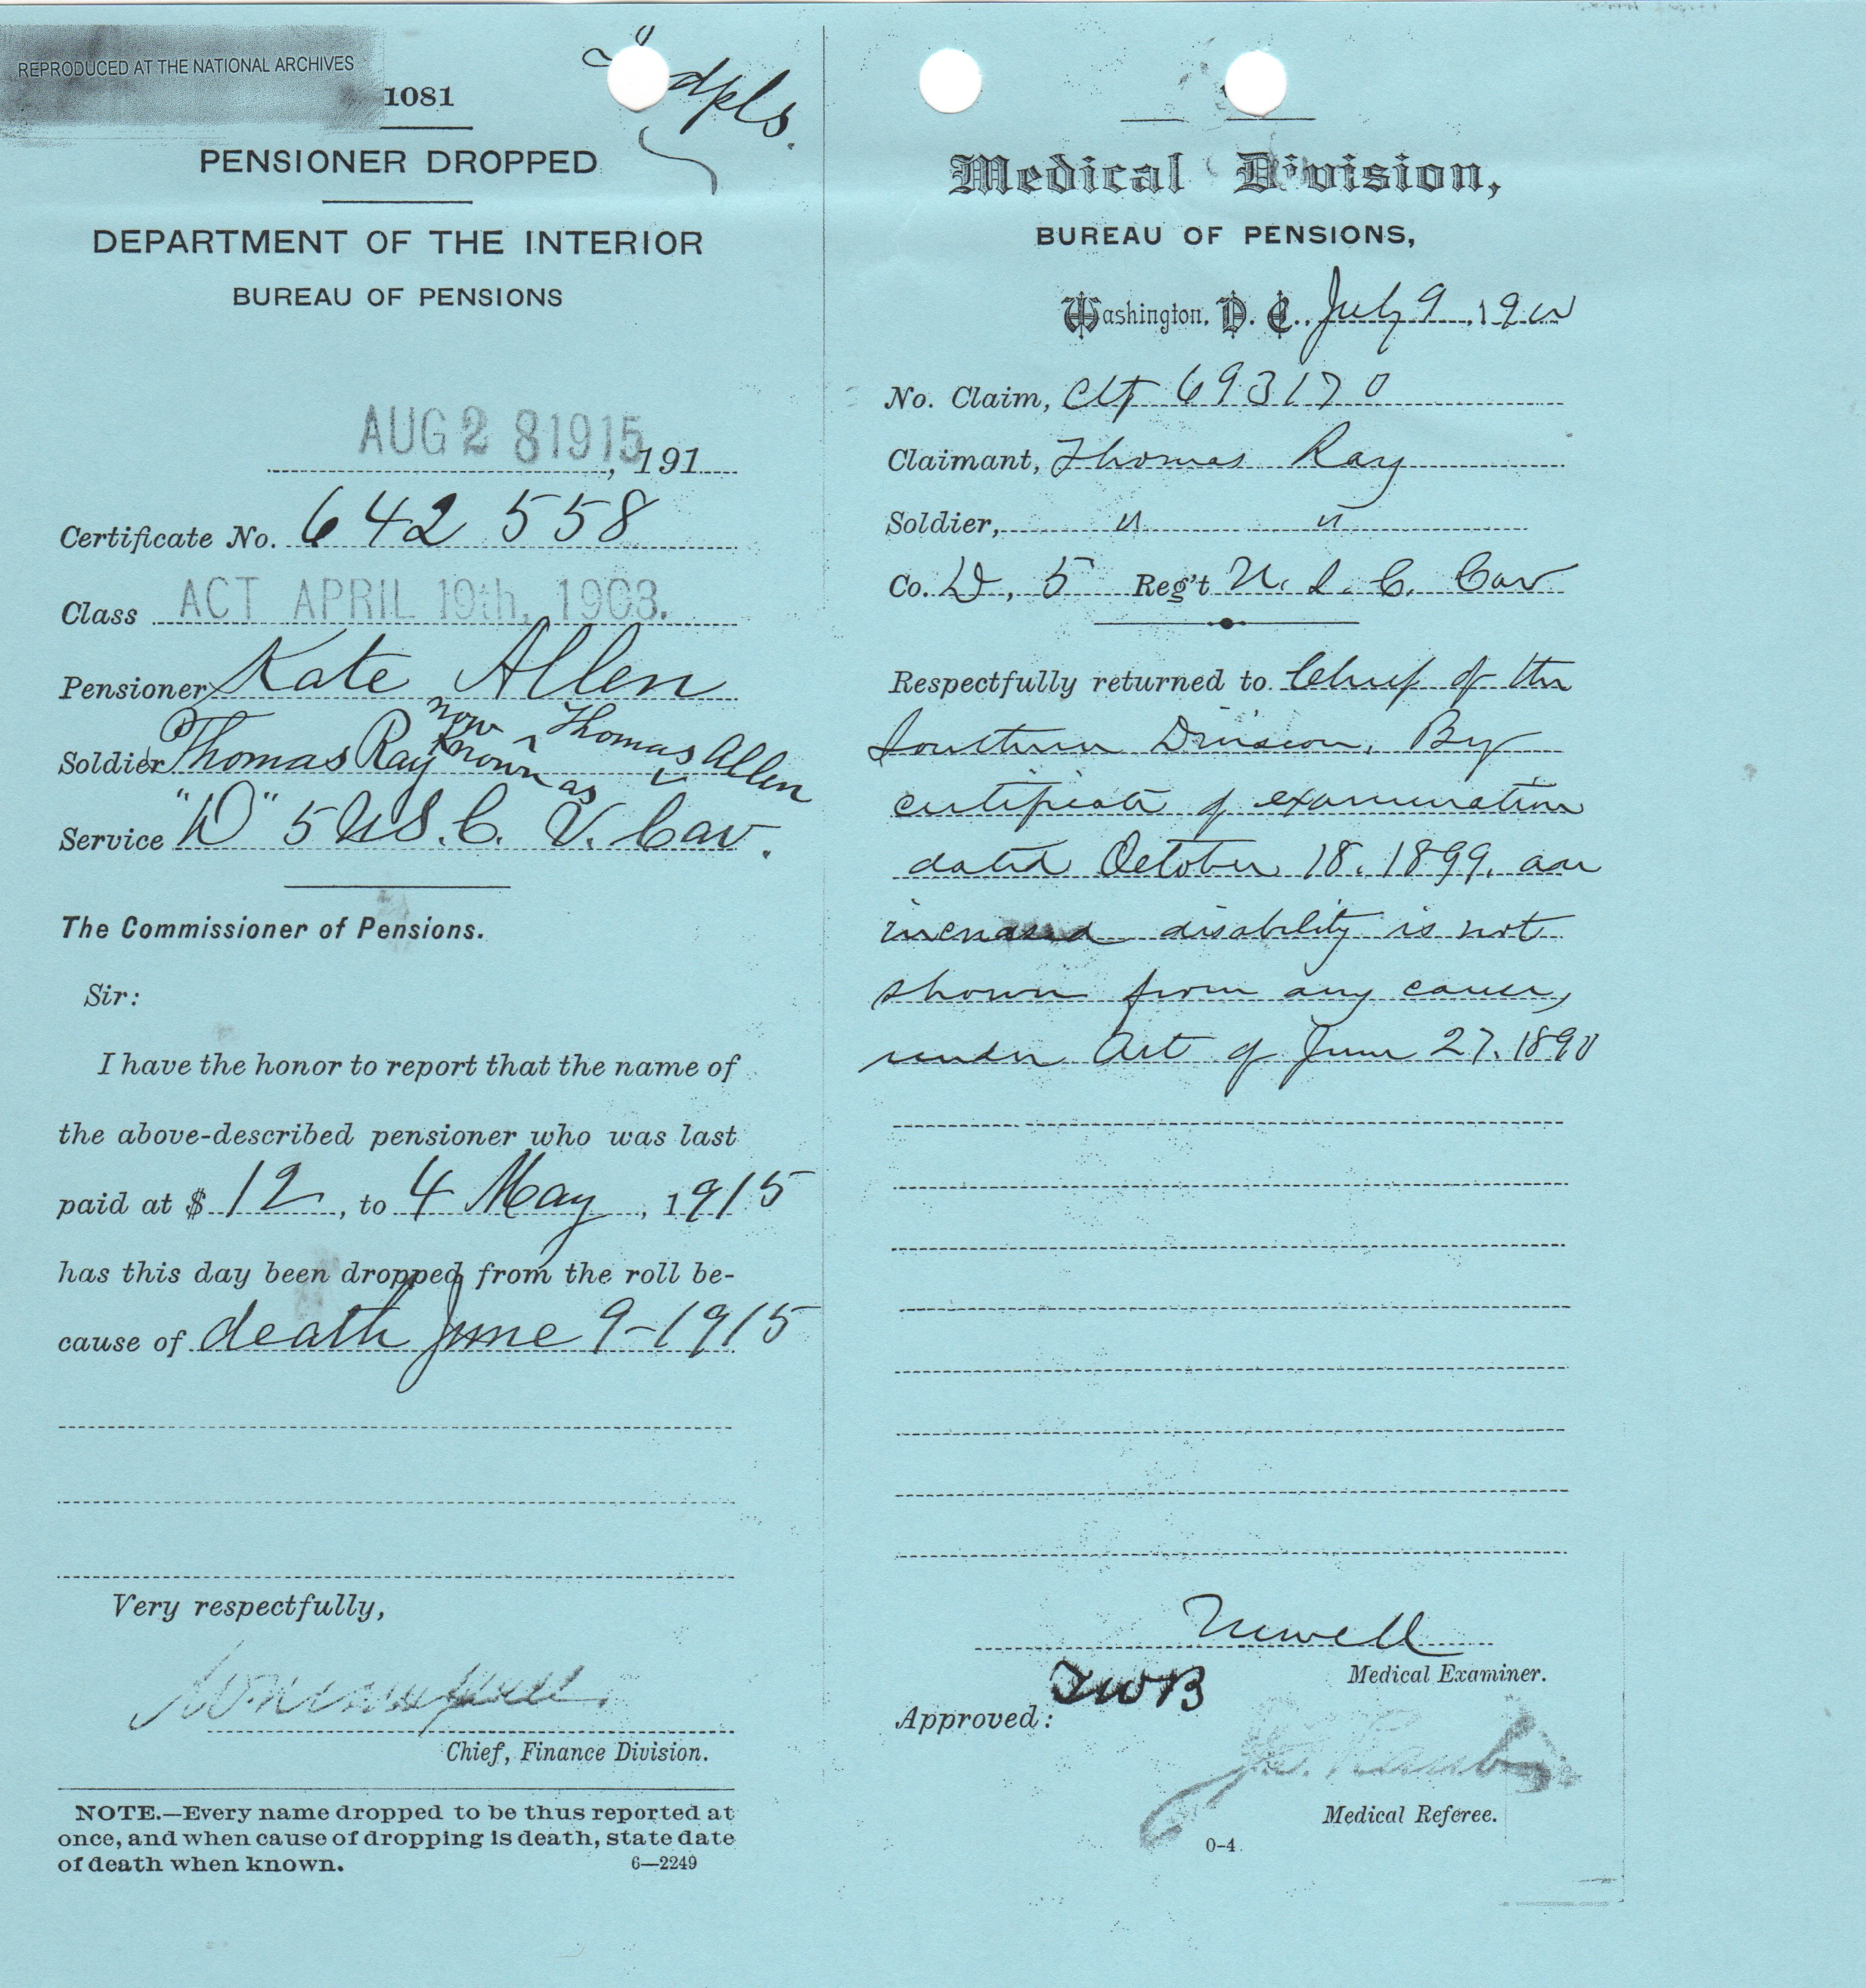 Thomas organ company pension - While Investigating The Life Of Kate Wiley I Found That Her Family Connected With Mine In Another Way Her Older Sister Francis Fannie Wiley Became The